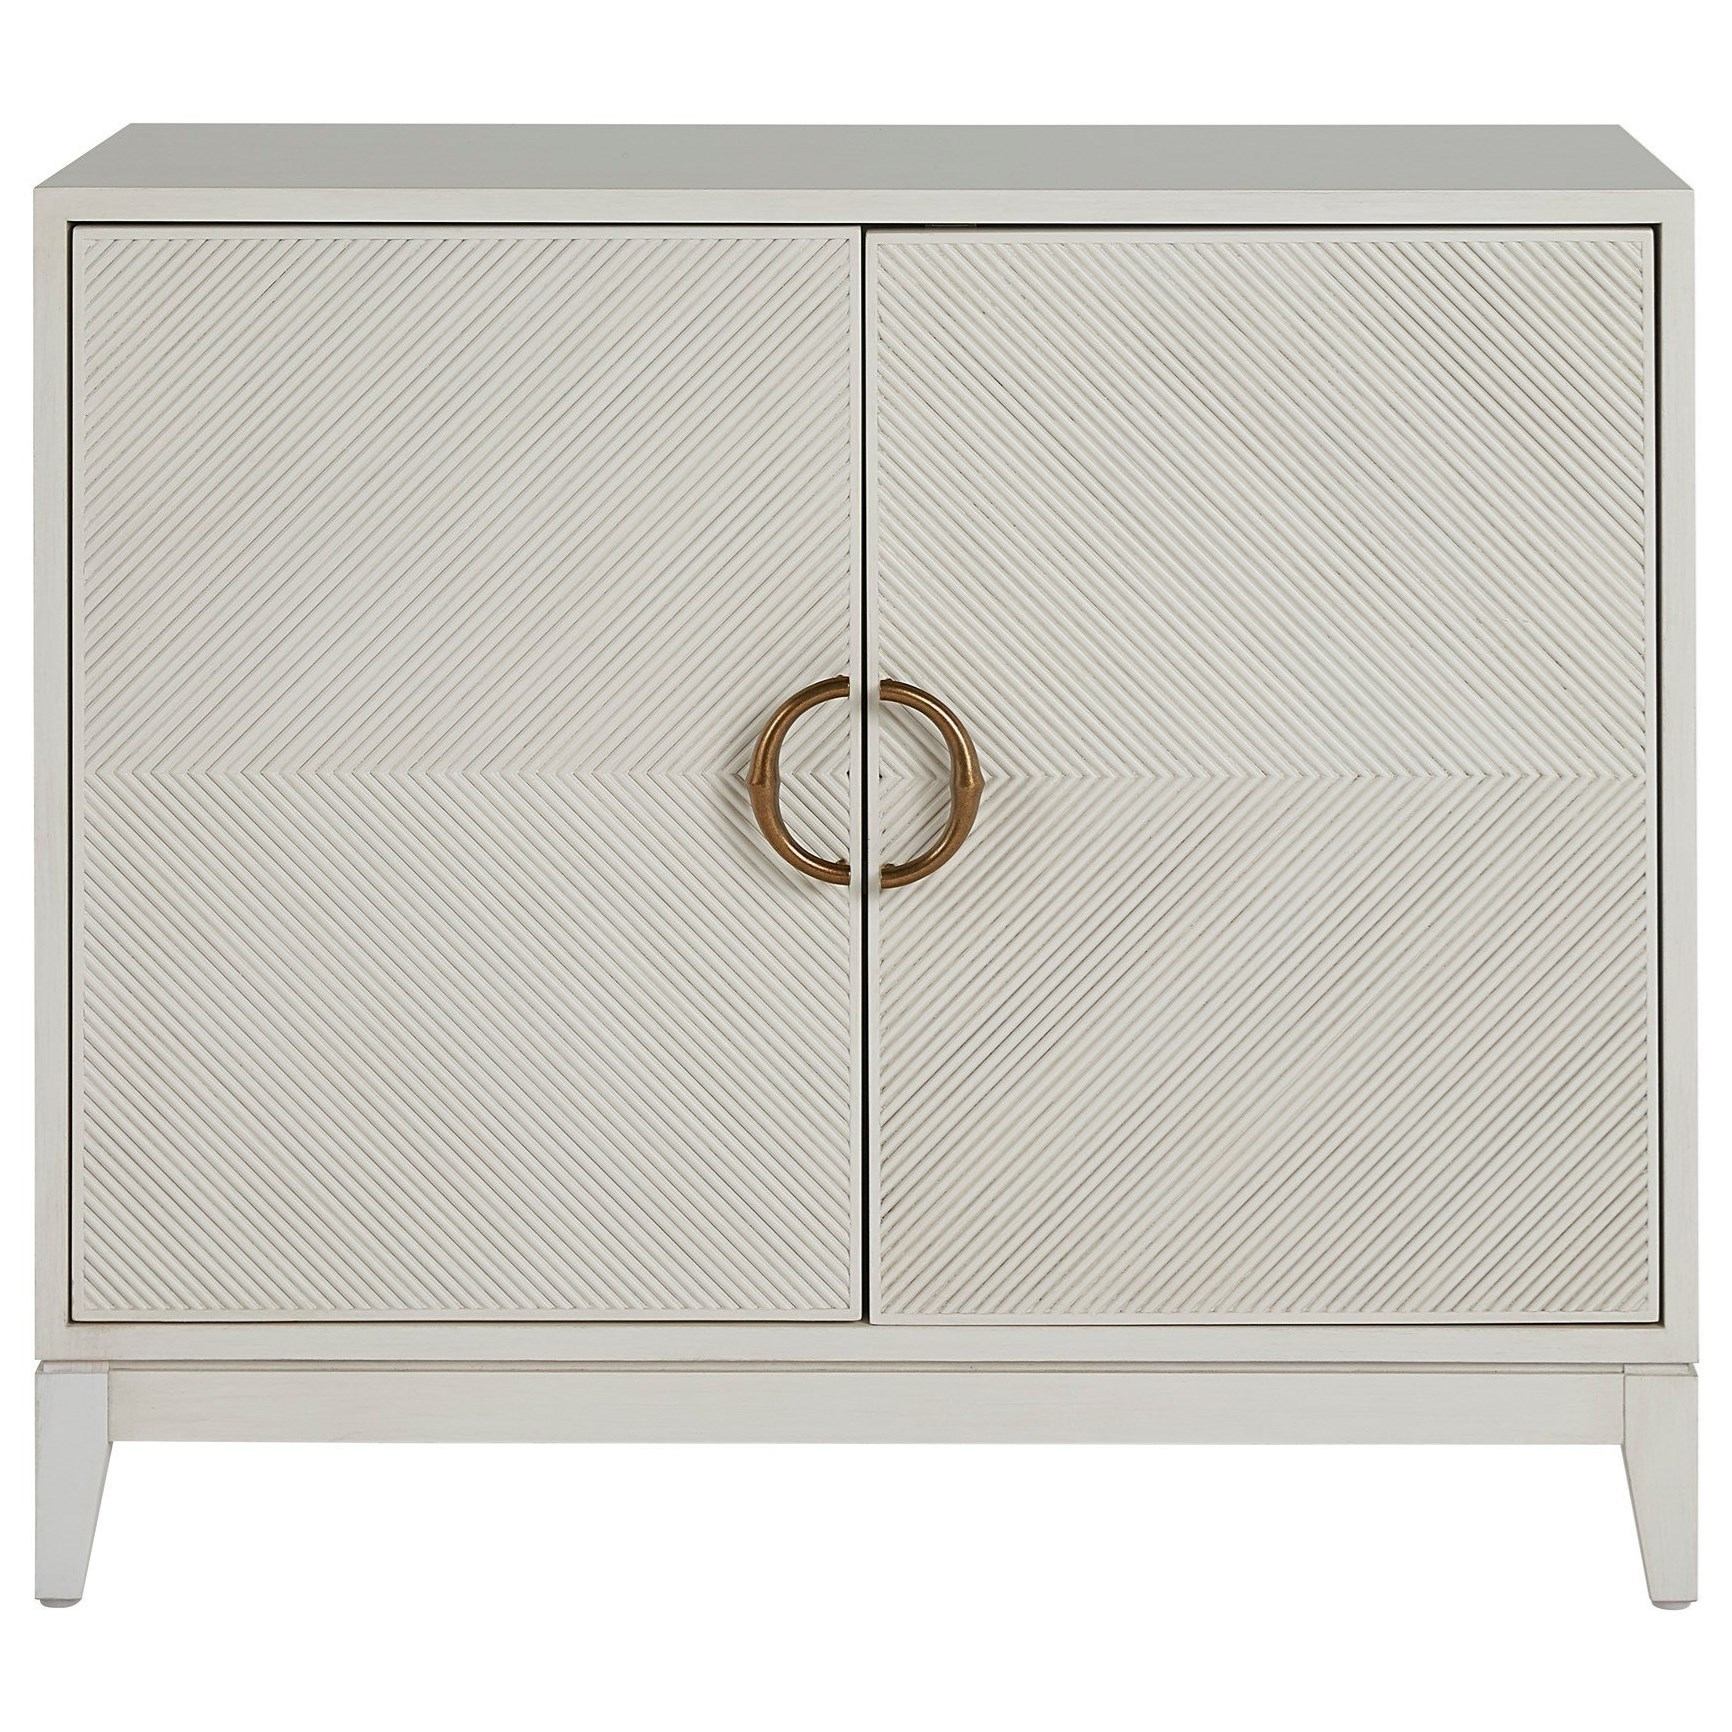 Coastal Living Home - Getaway Chest by Universal at Baer's Furniture